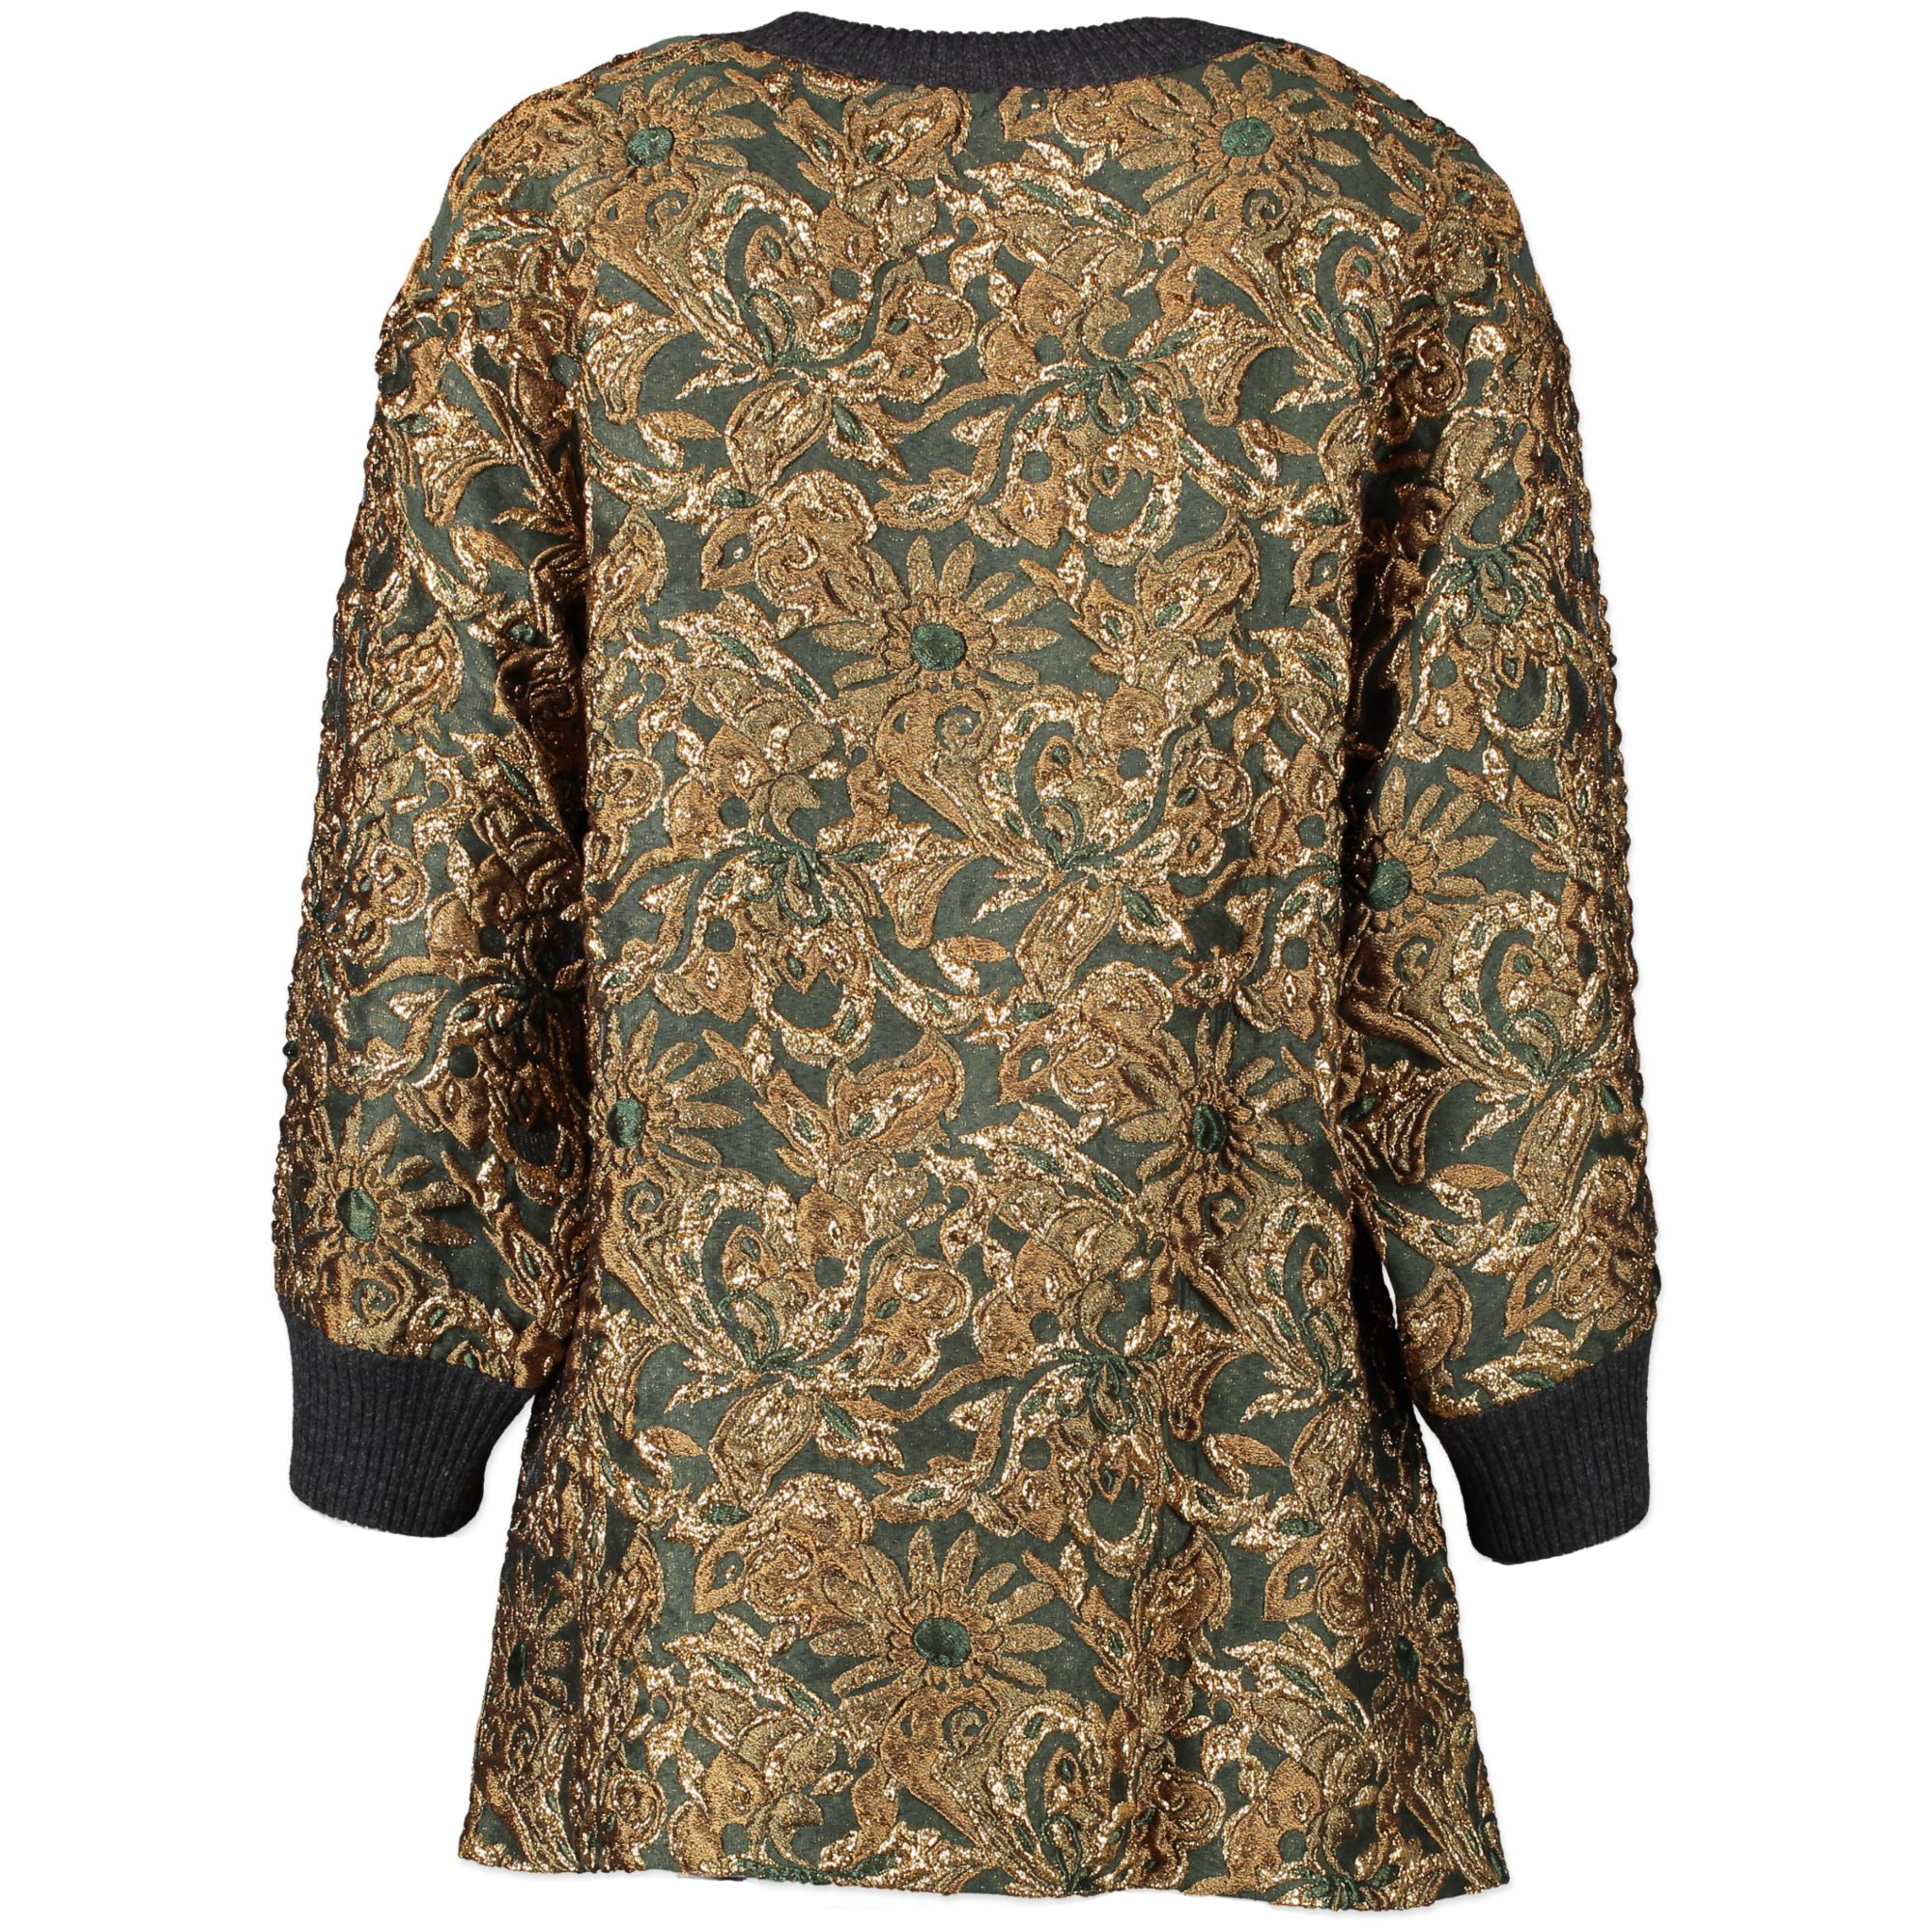 Are you looking for an authentic designer Dolce & Gabbana Green And Gold Sweater - Size IT38